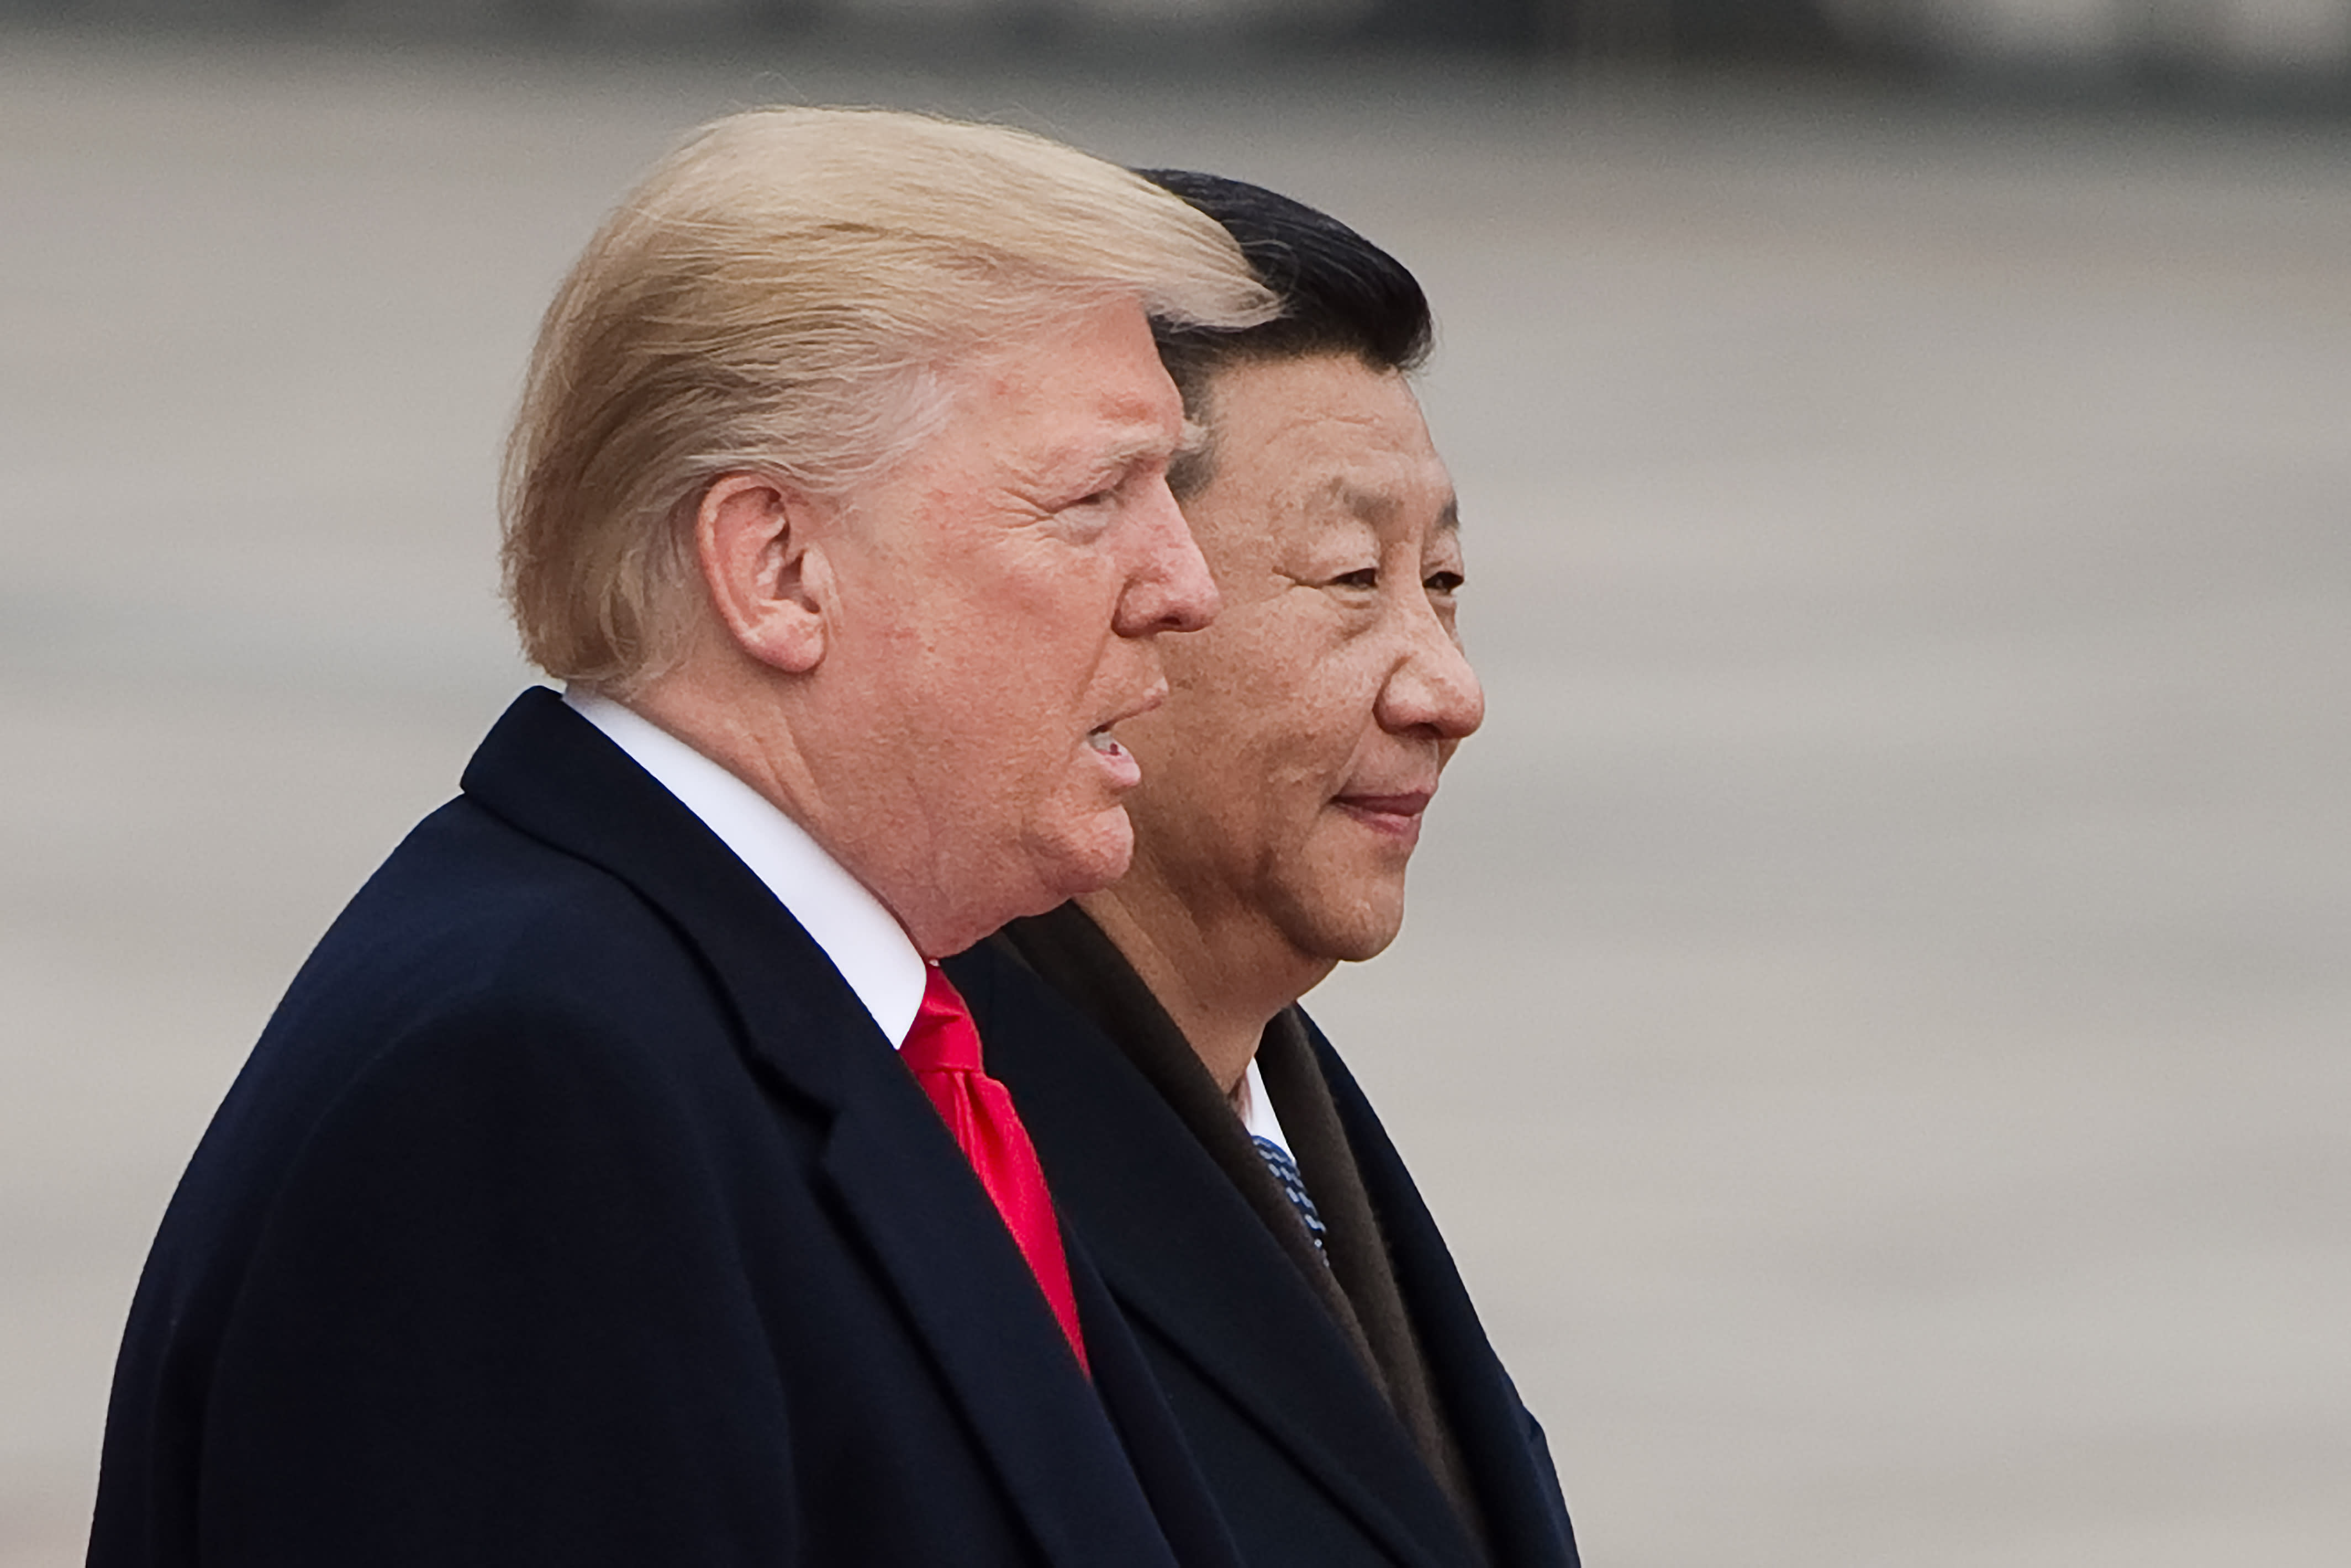 There's a '50-50' chance of a trade deal at the G-20, says former US ambassador